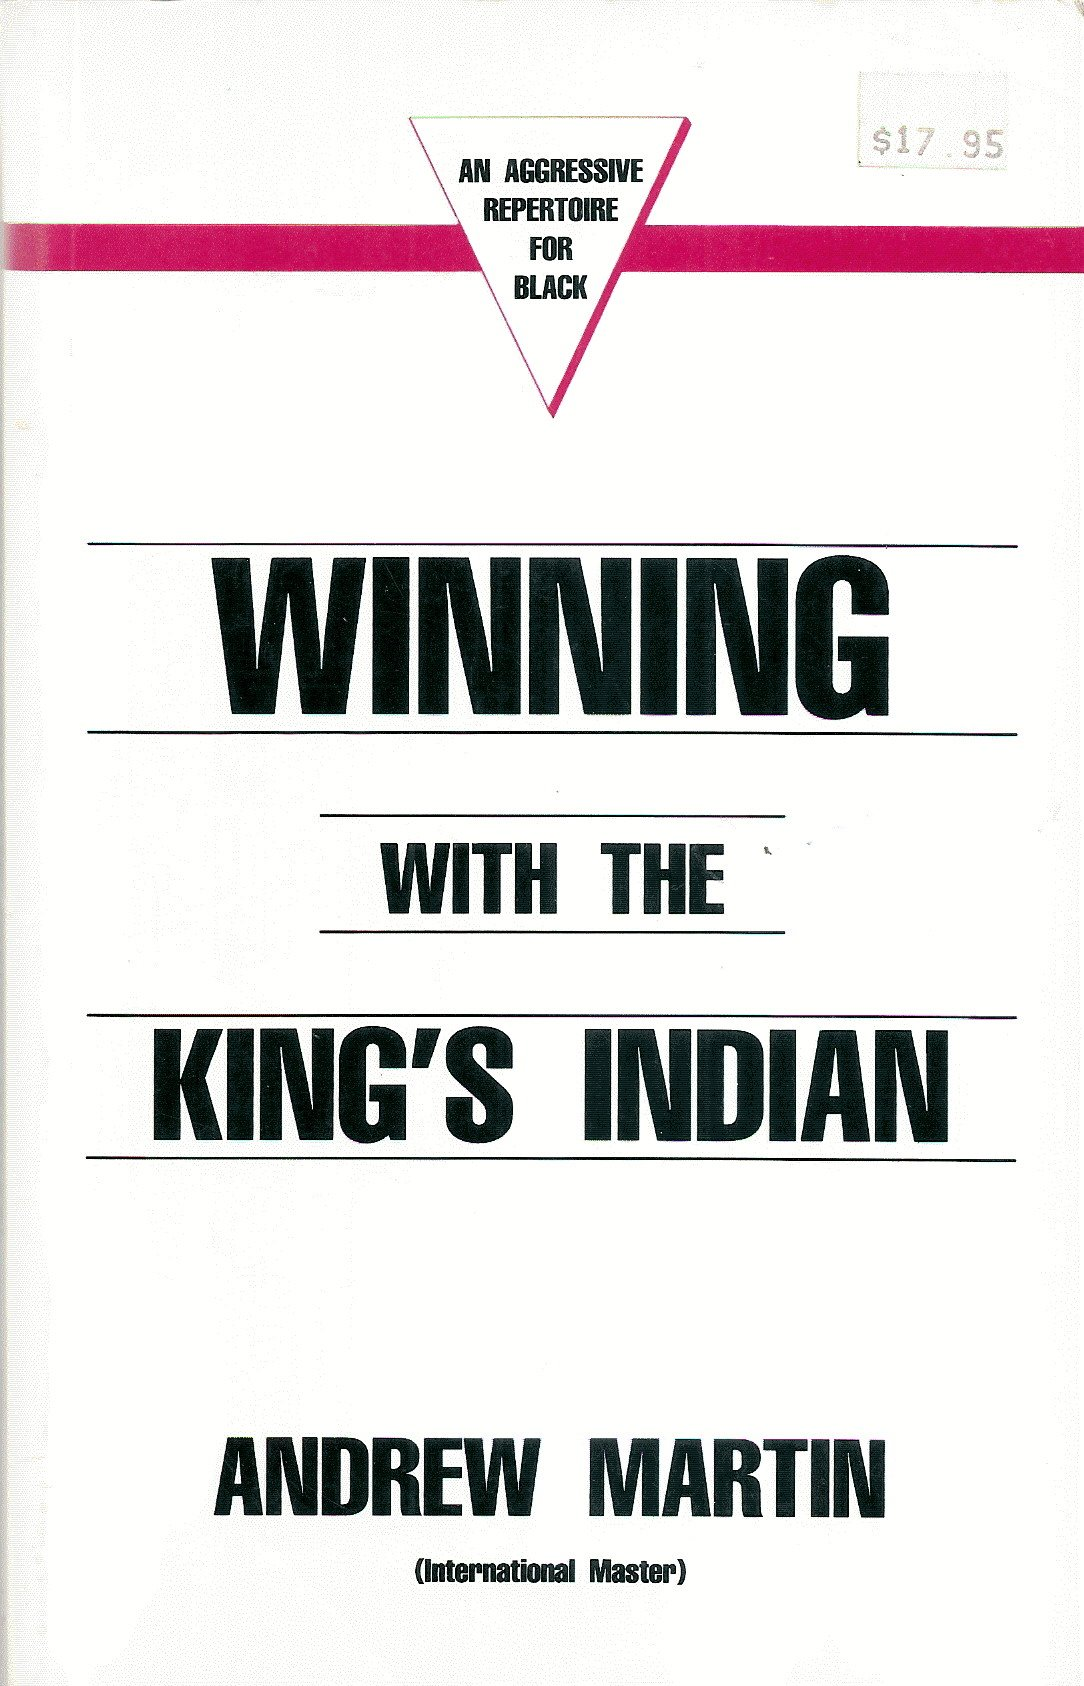 Winning With the King's Indian, Caissa Publishing, Andrew Martin, 1989